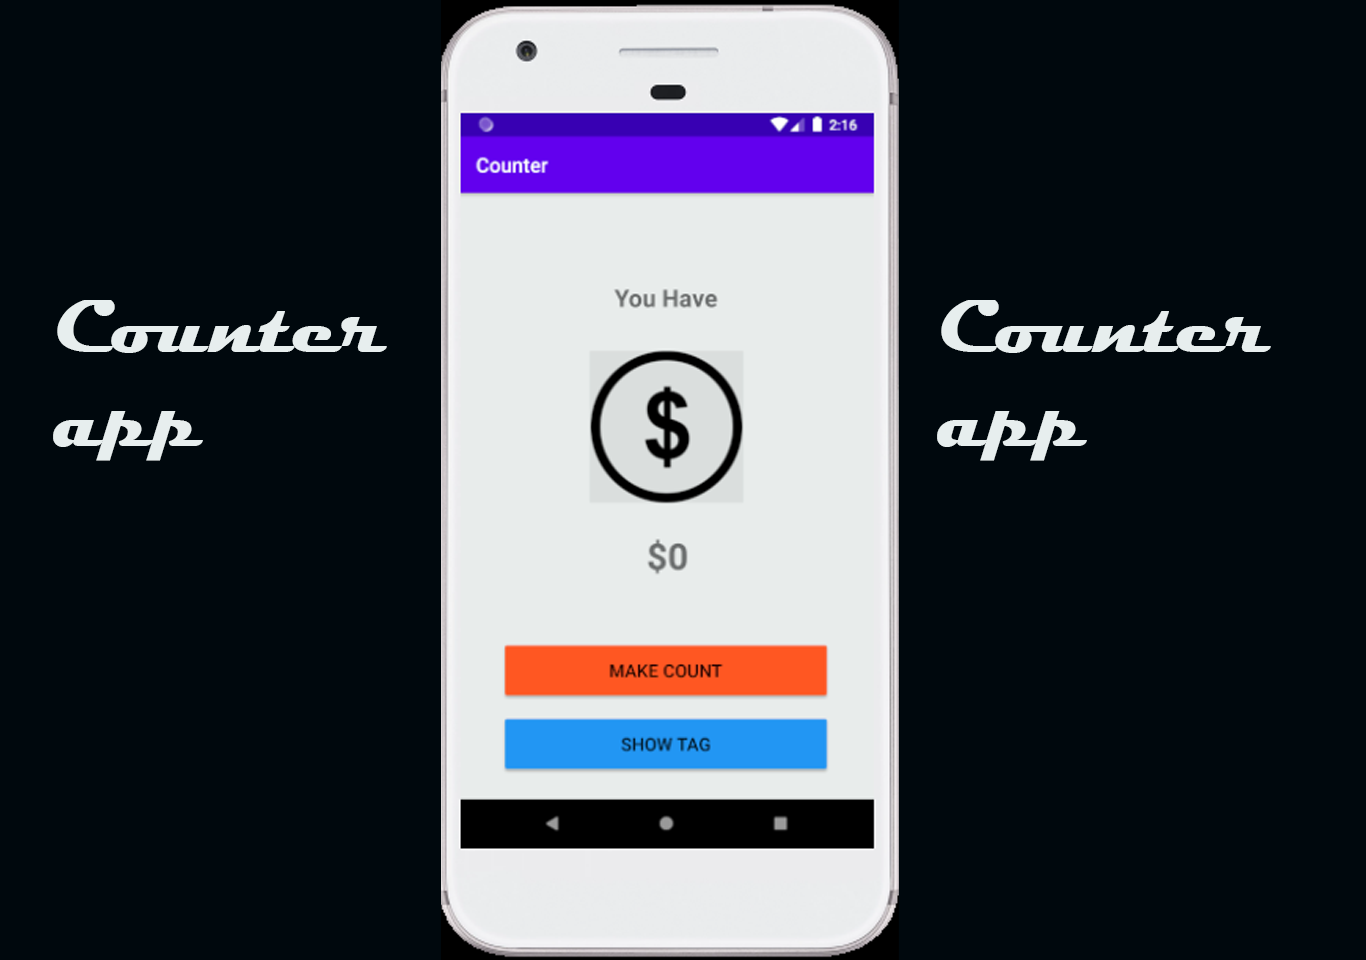 Counter app in Android with Source code